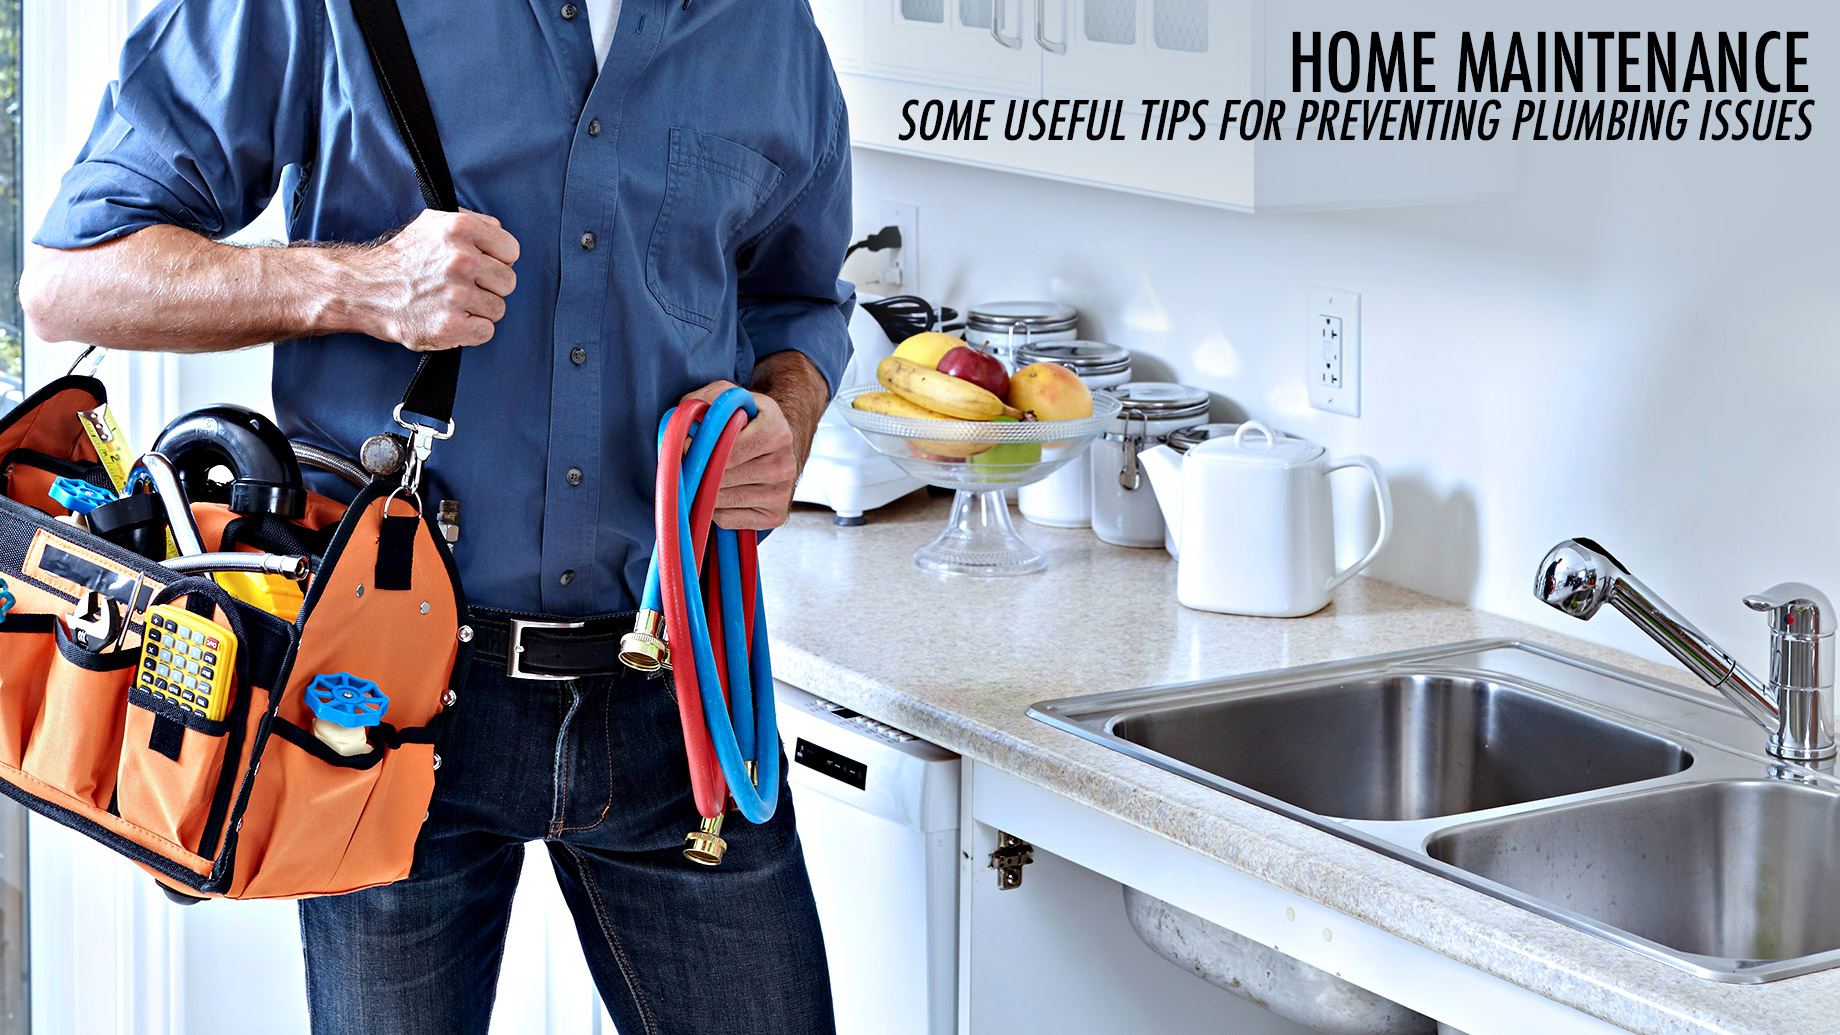 Home Maintenance - Some Useful Tips for Preventing Plumbing Issues